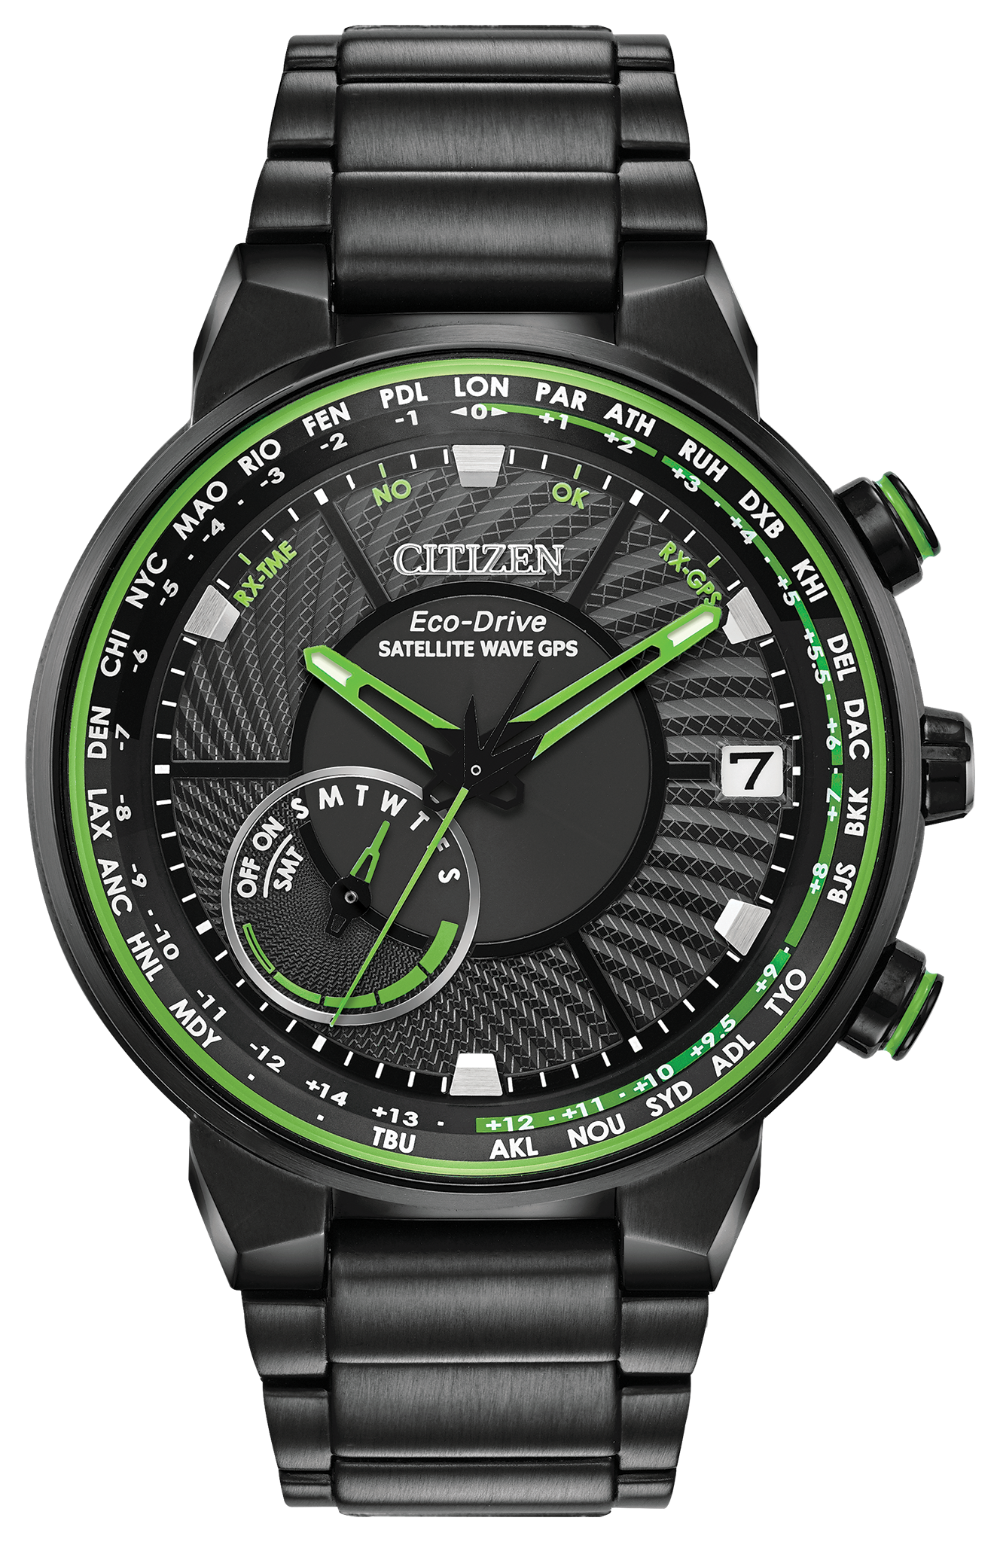 Citizen 44mm SATELLITE WAVE GPS FREEDOM CC3035-50E